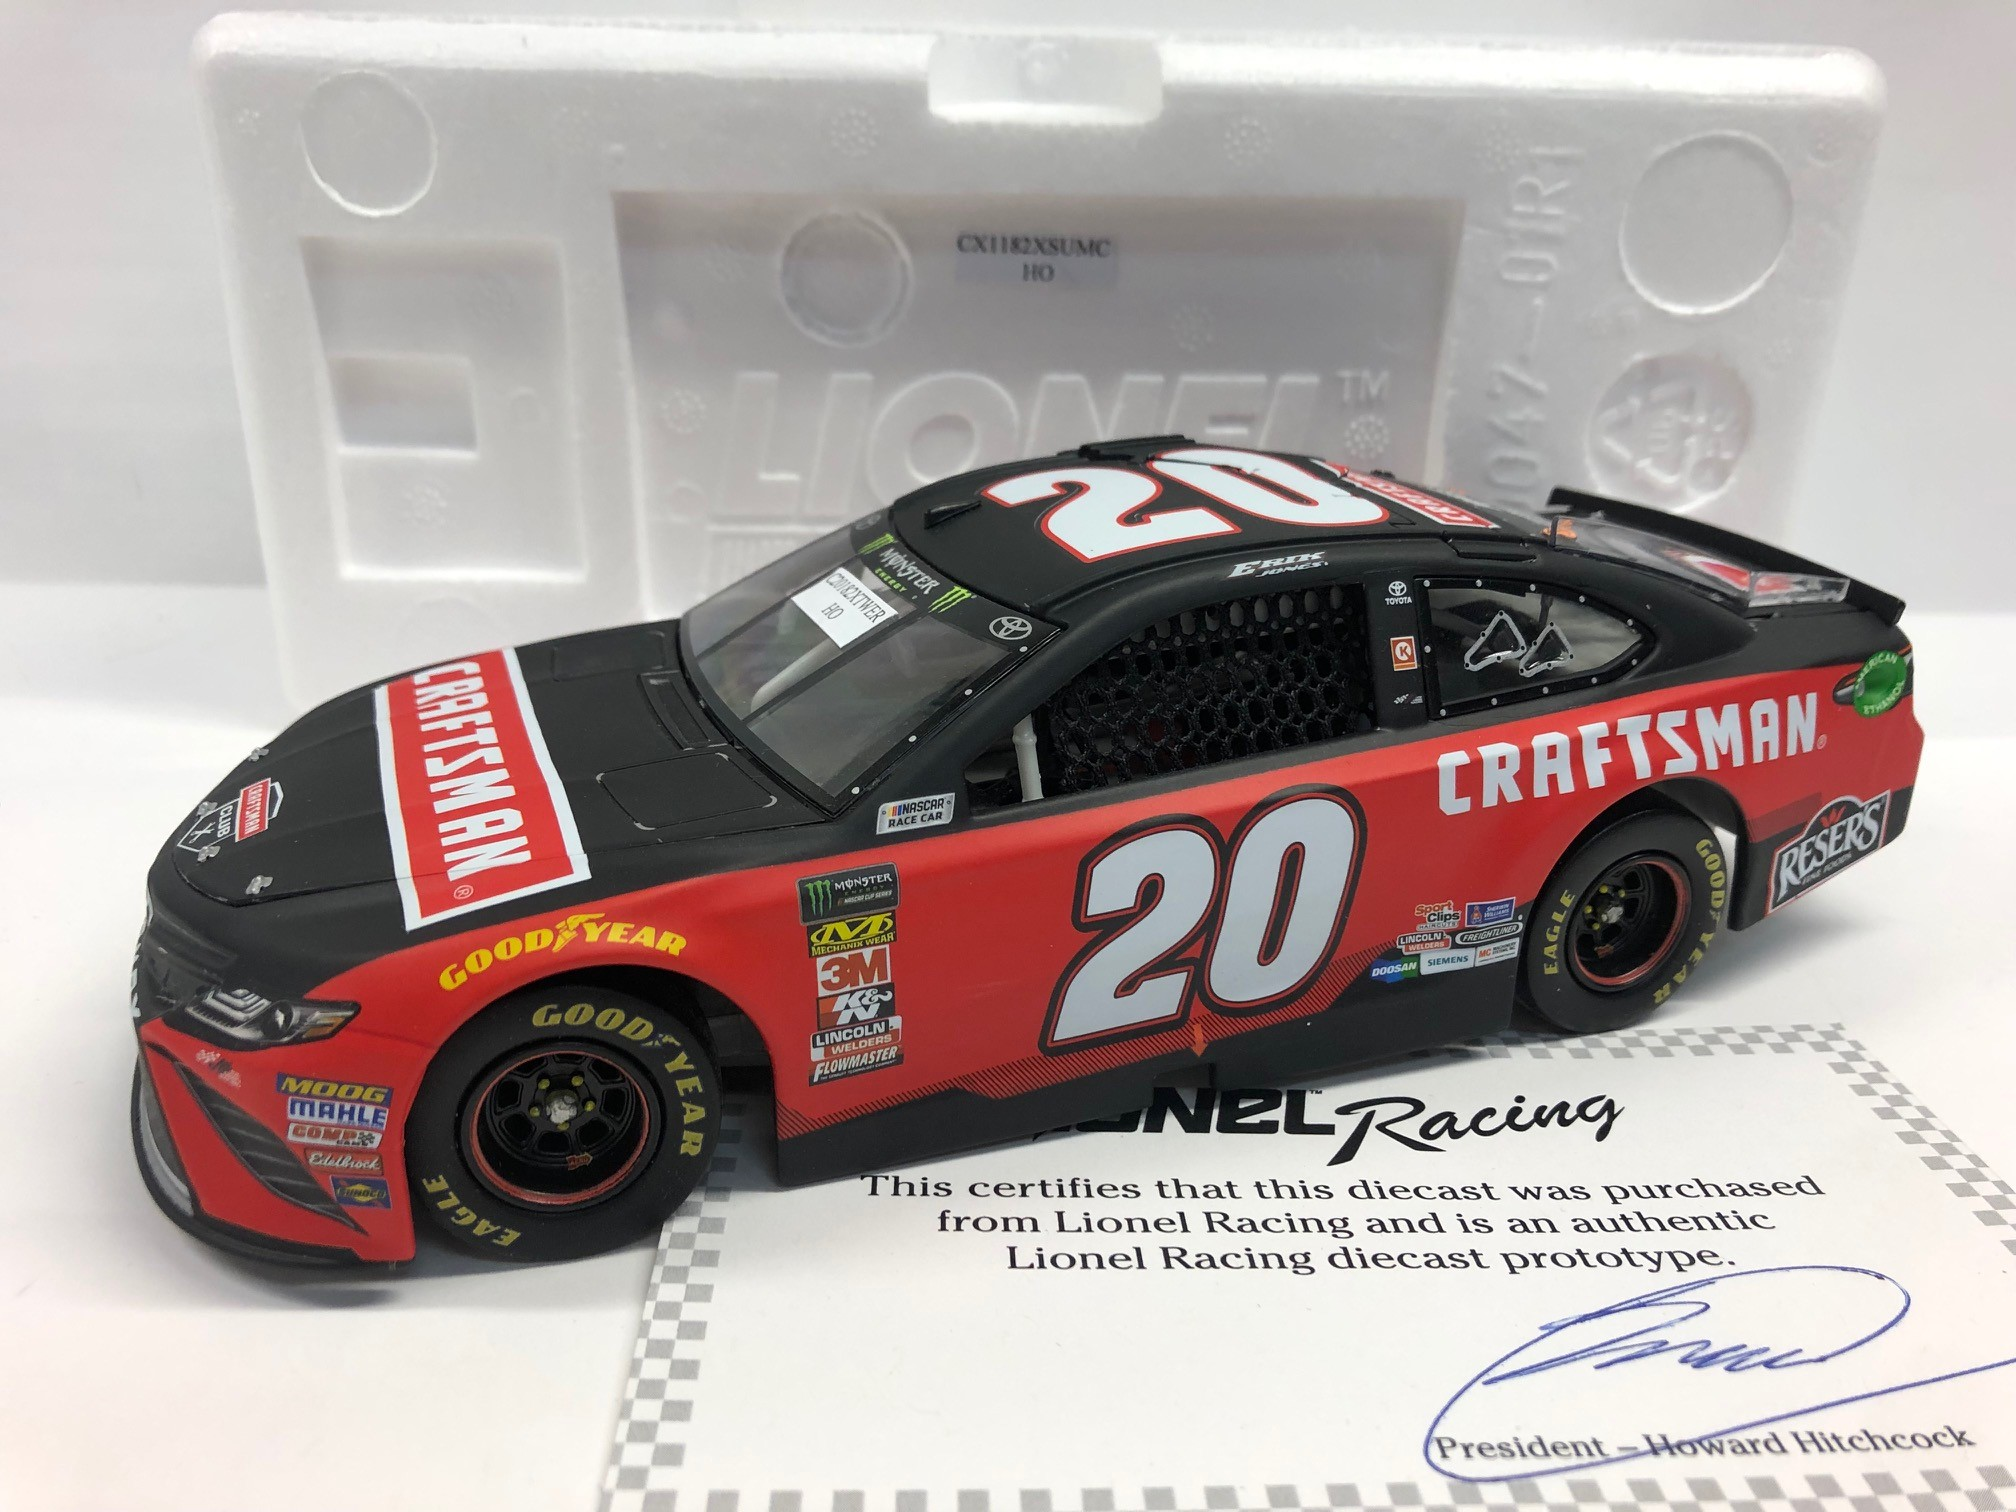 ERIK JONES 2018 CRAFTSMAN 1:24 ARC PROTOTYPE DIECAST - DNP